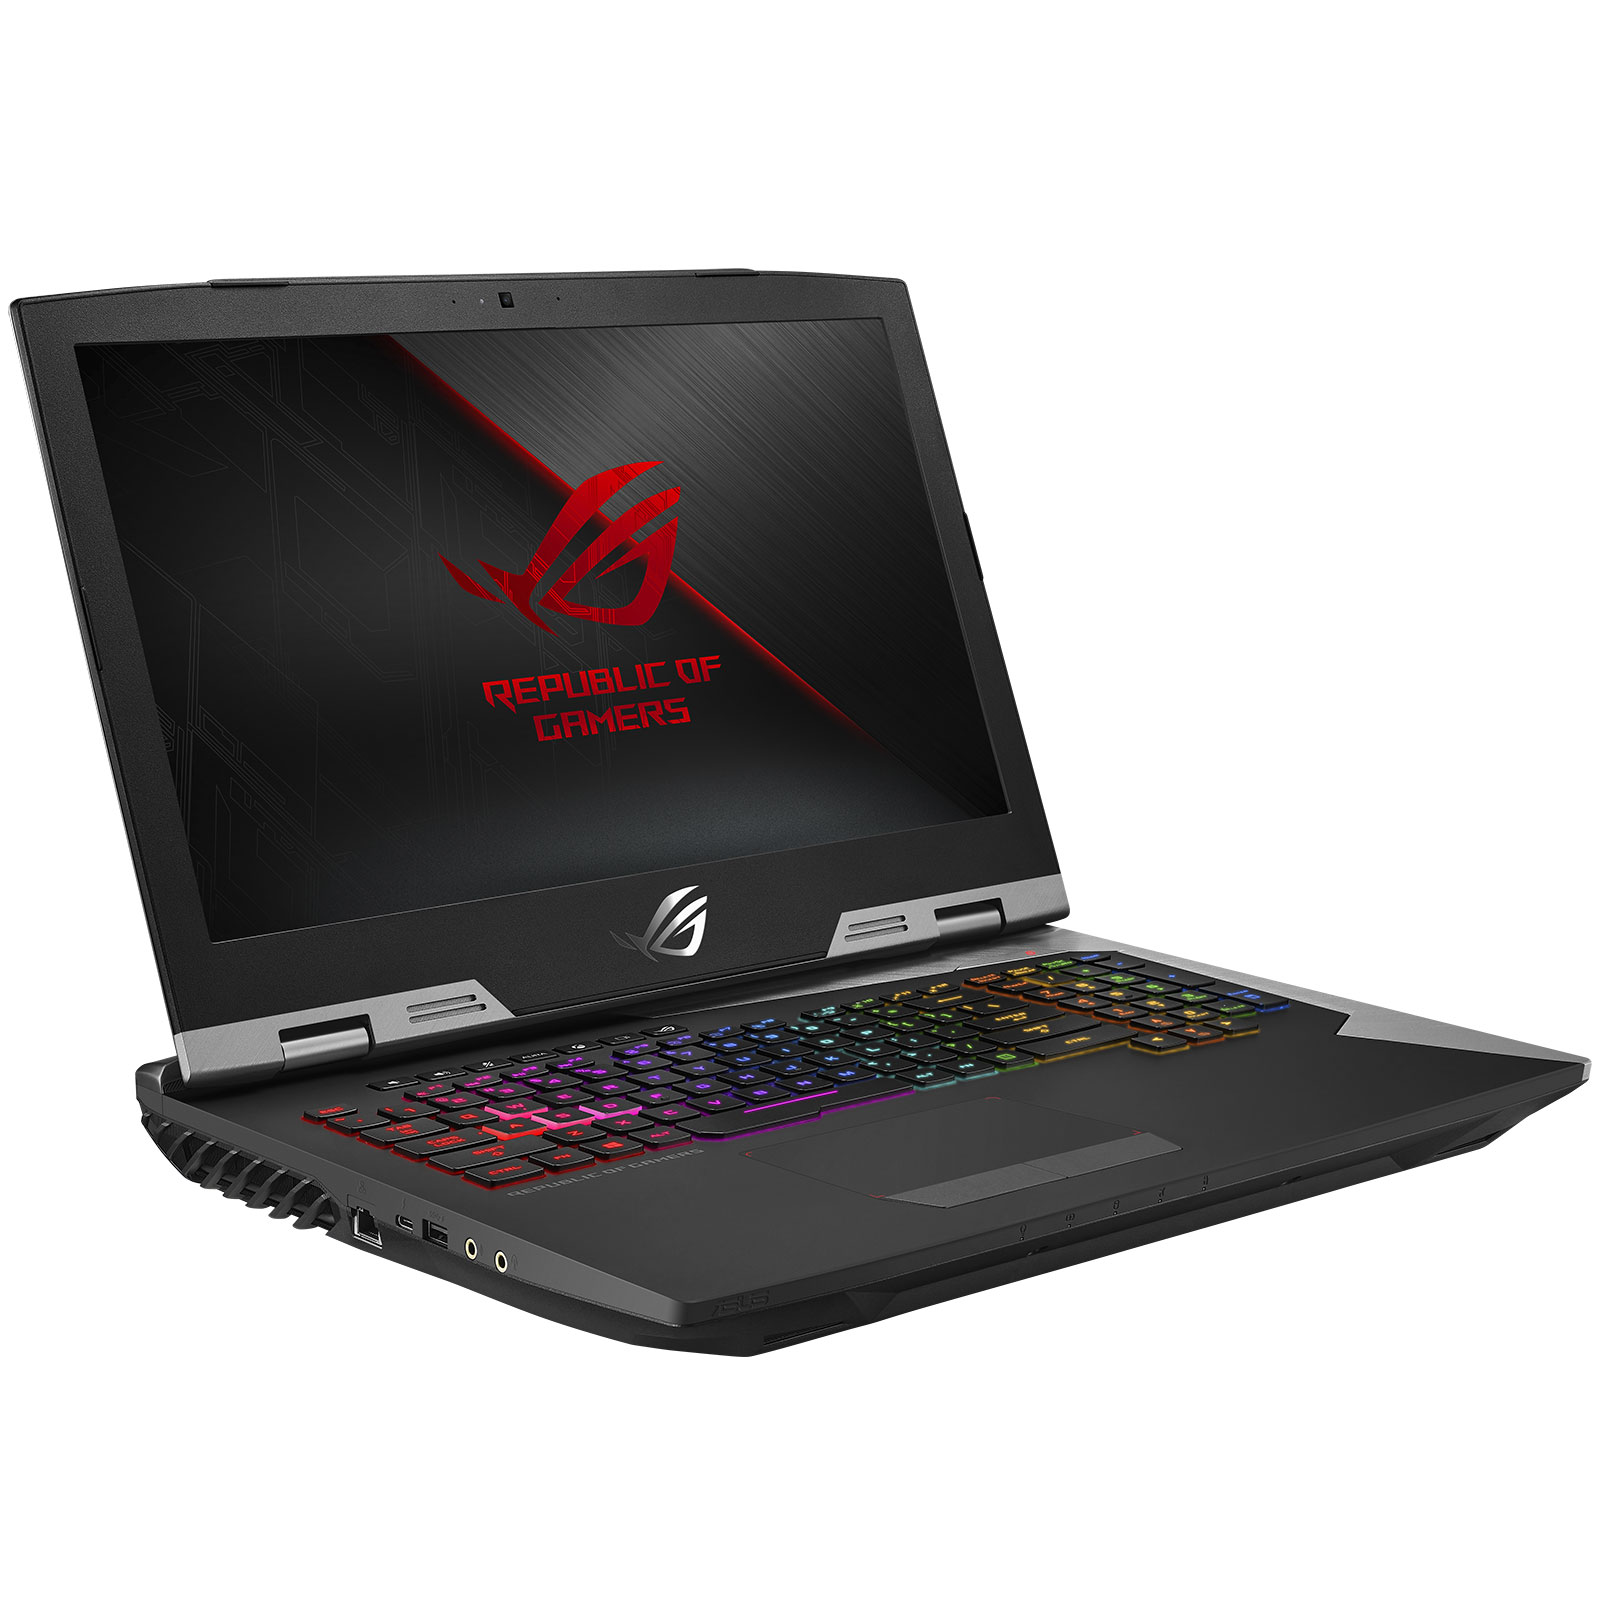 "PC portable ASUS ROG Chimera G703VI-E5046T Intel Core i7-7700HQ 16 Go SSD 256 Go + HDD 1 To 17.3"" LED Full HD 144 Hz G-SYNC NVIDIA GeForce GTX 1080 8 Go Wi-Fi AC/Bluetooth Webcam Windows 10 Premium 64 bits (garantie constructeur 2 ans)"